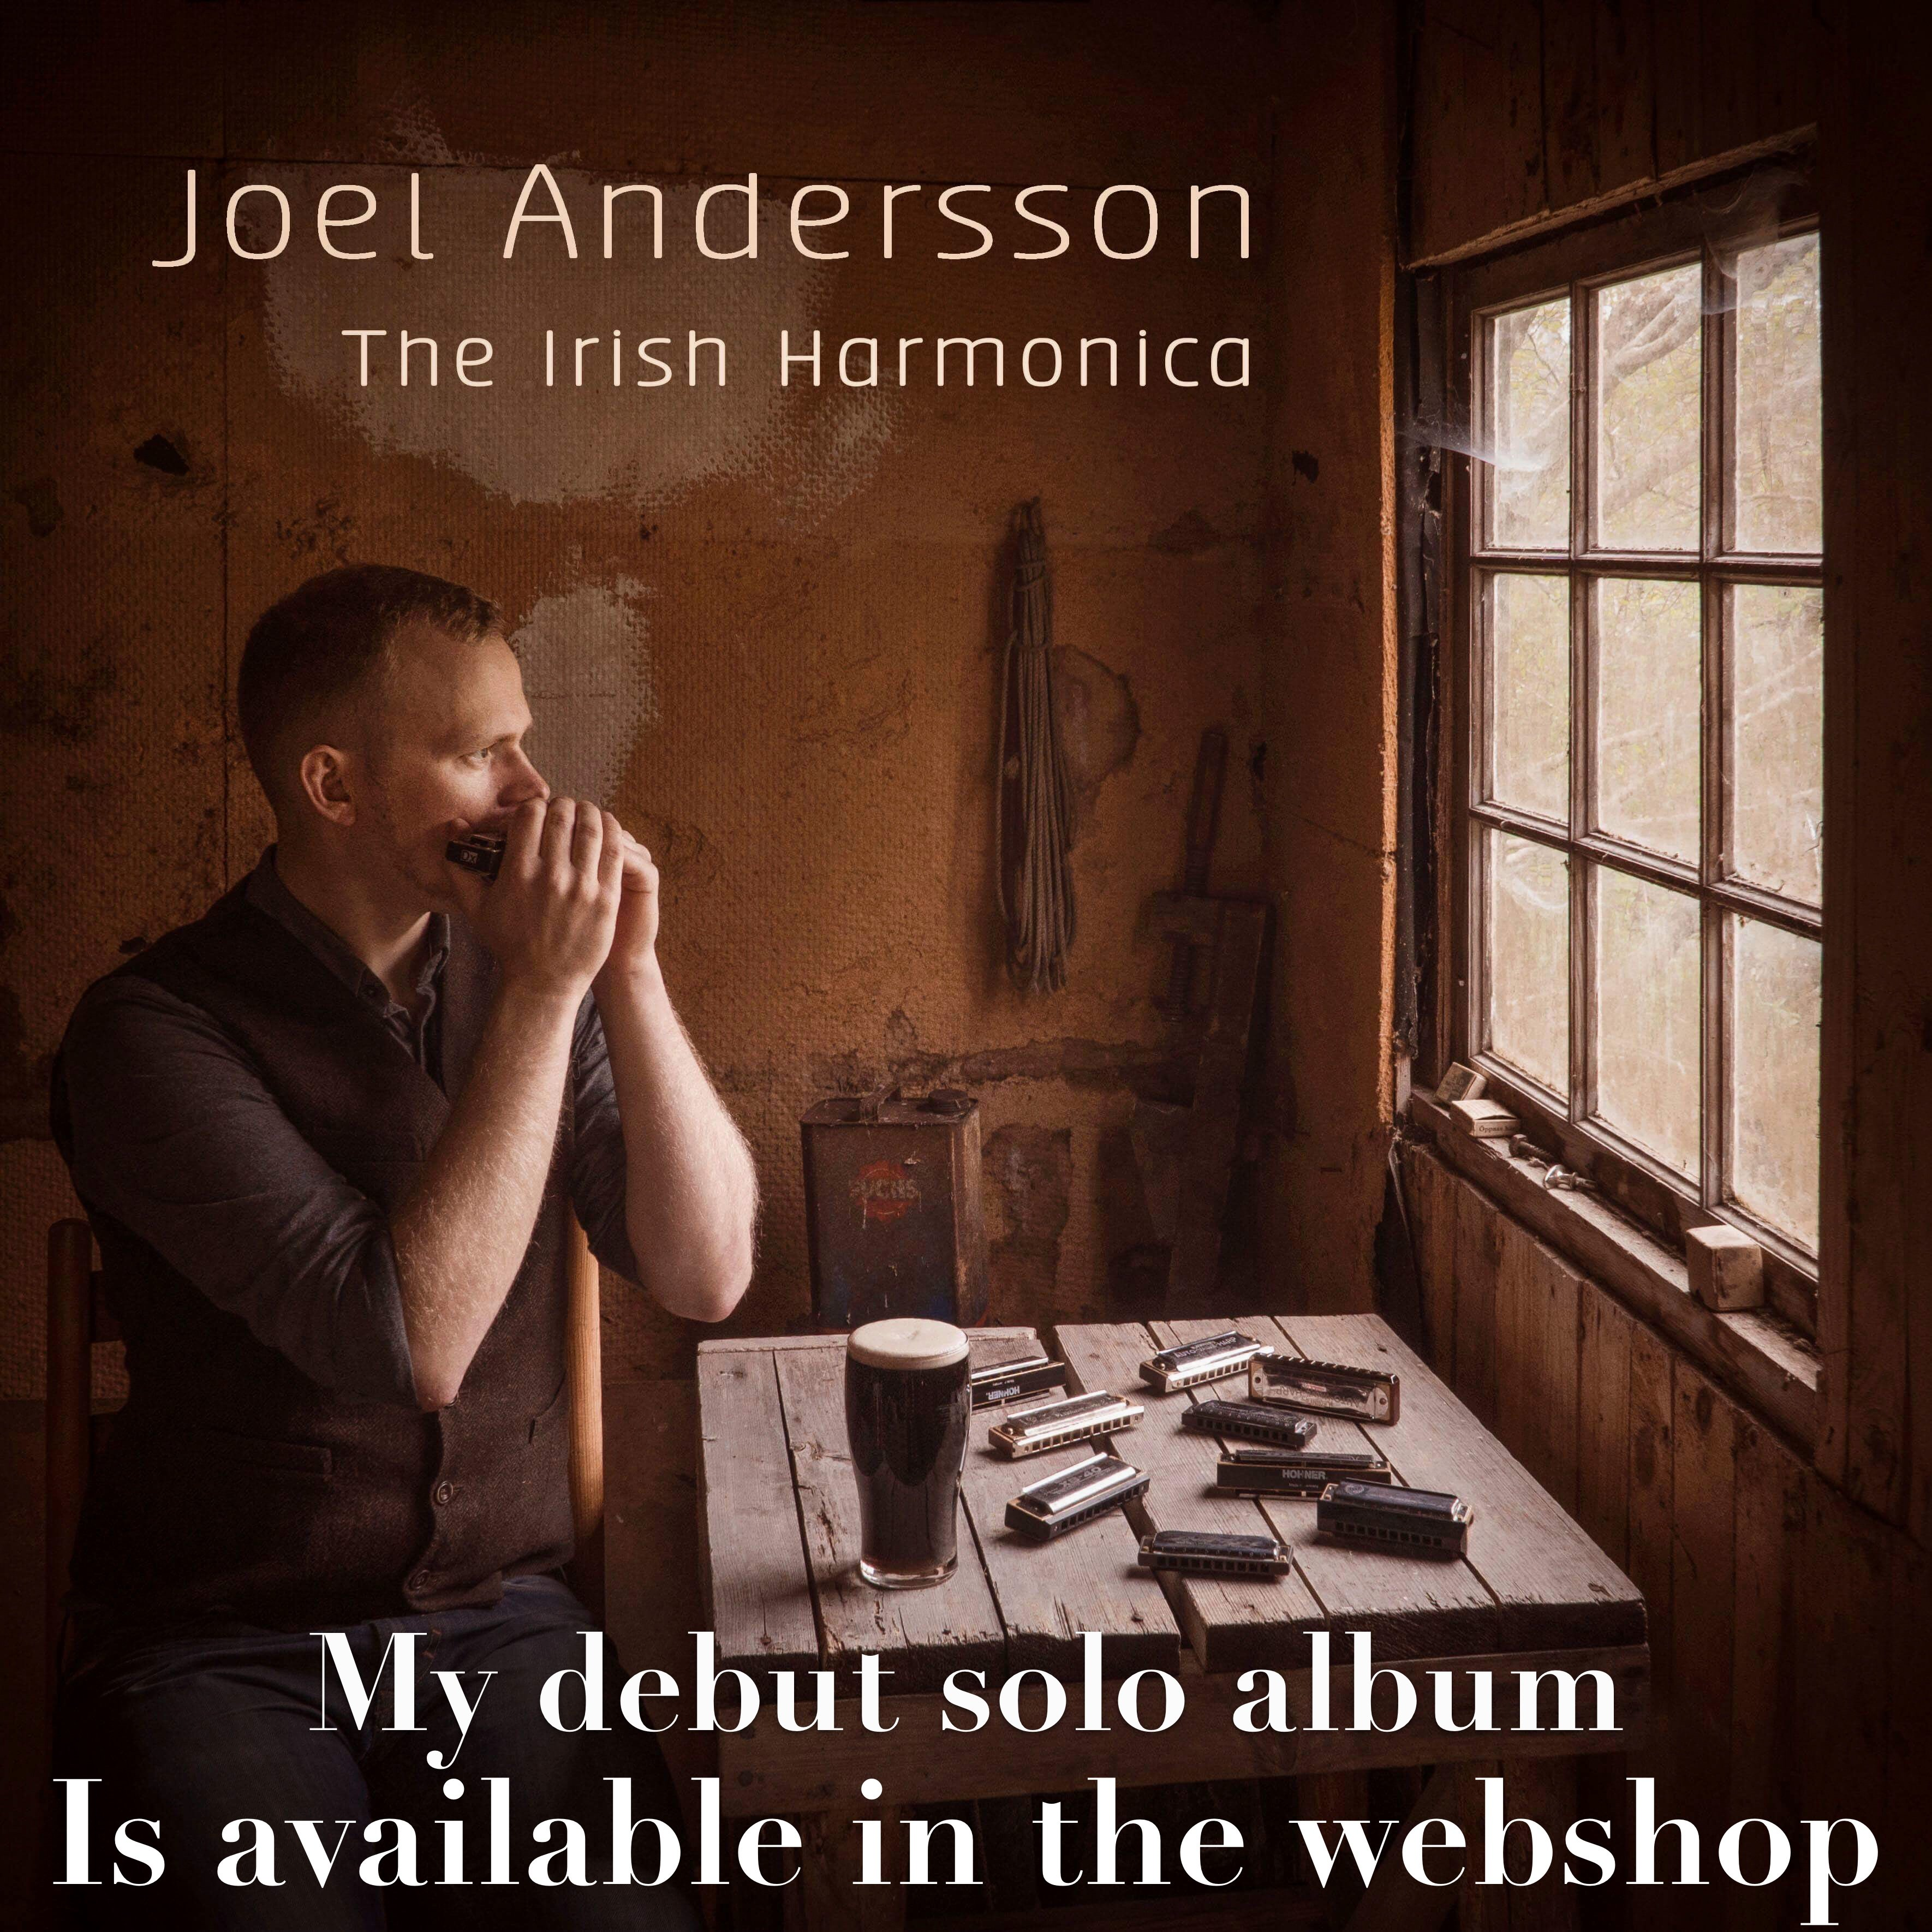 The Irish Harmonica